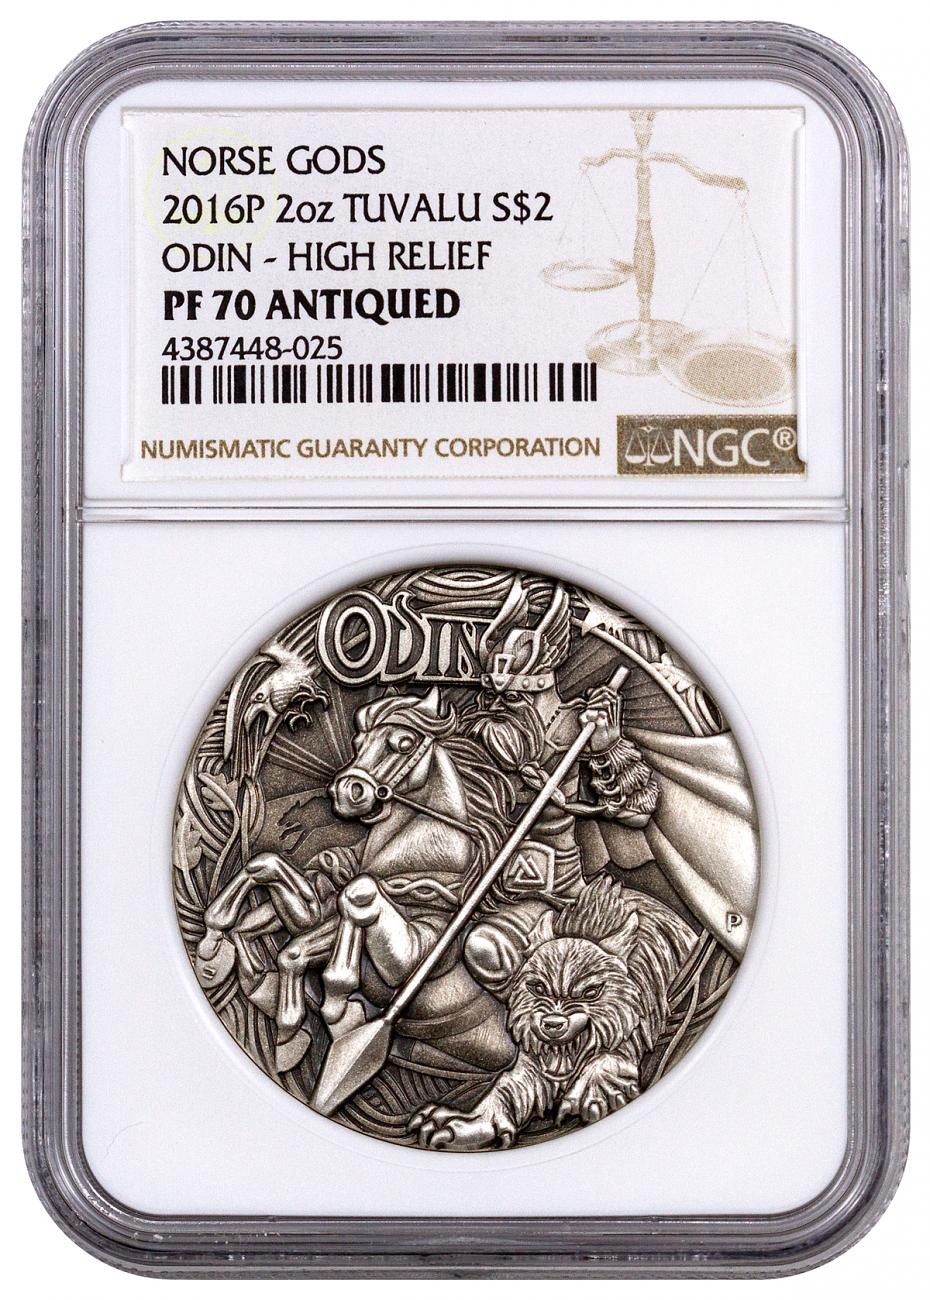 2016-P Tuvalu $2 2 oz. Antiqued High Relief Proof Silver Norse Gods - Odin - NGC PF70 UC